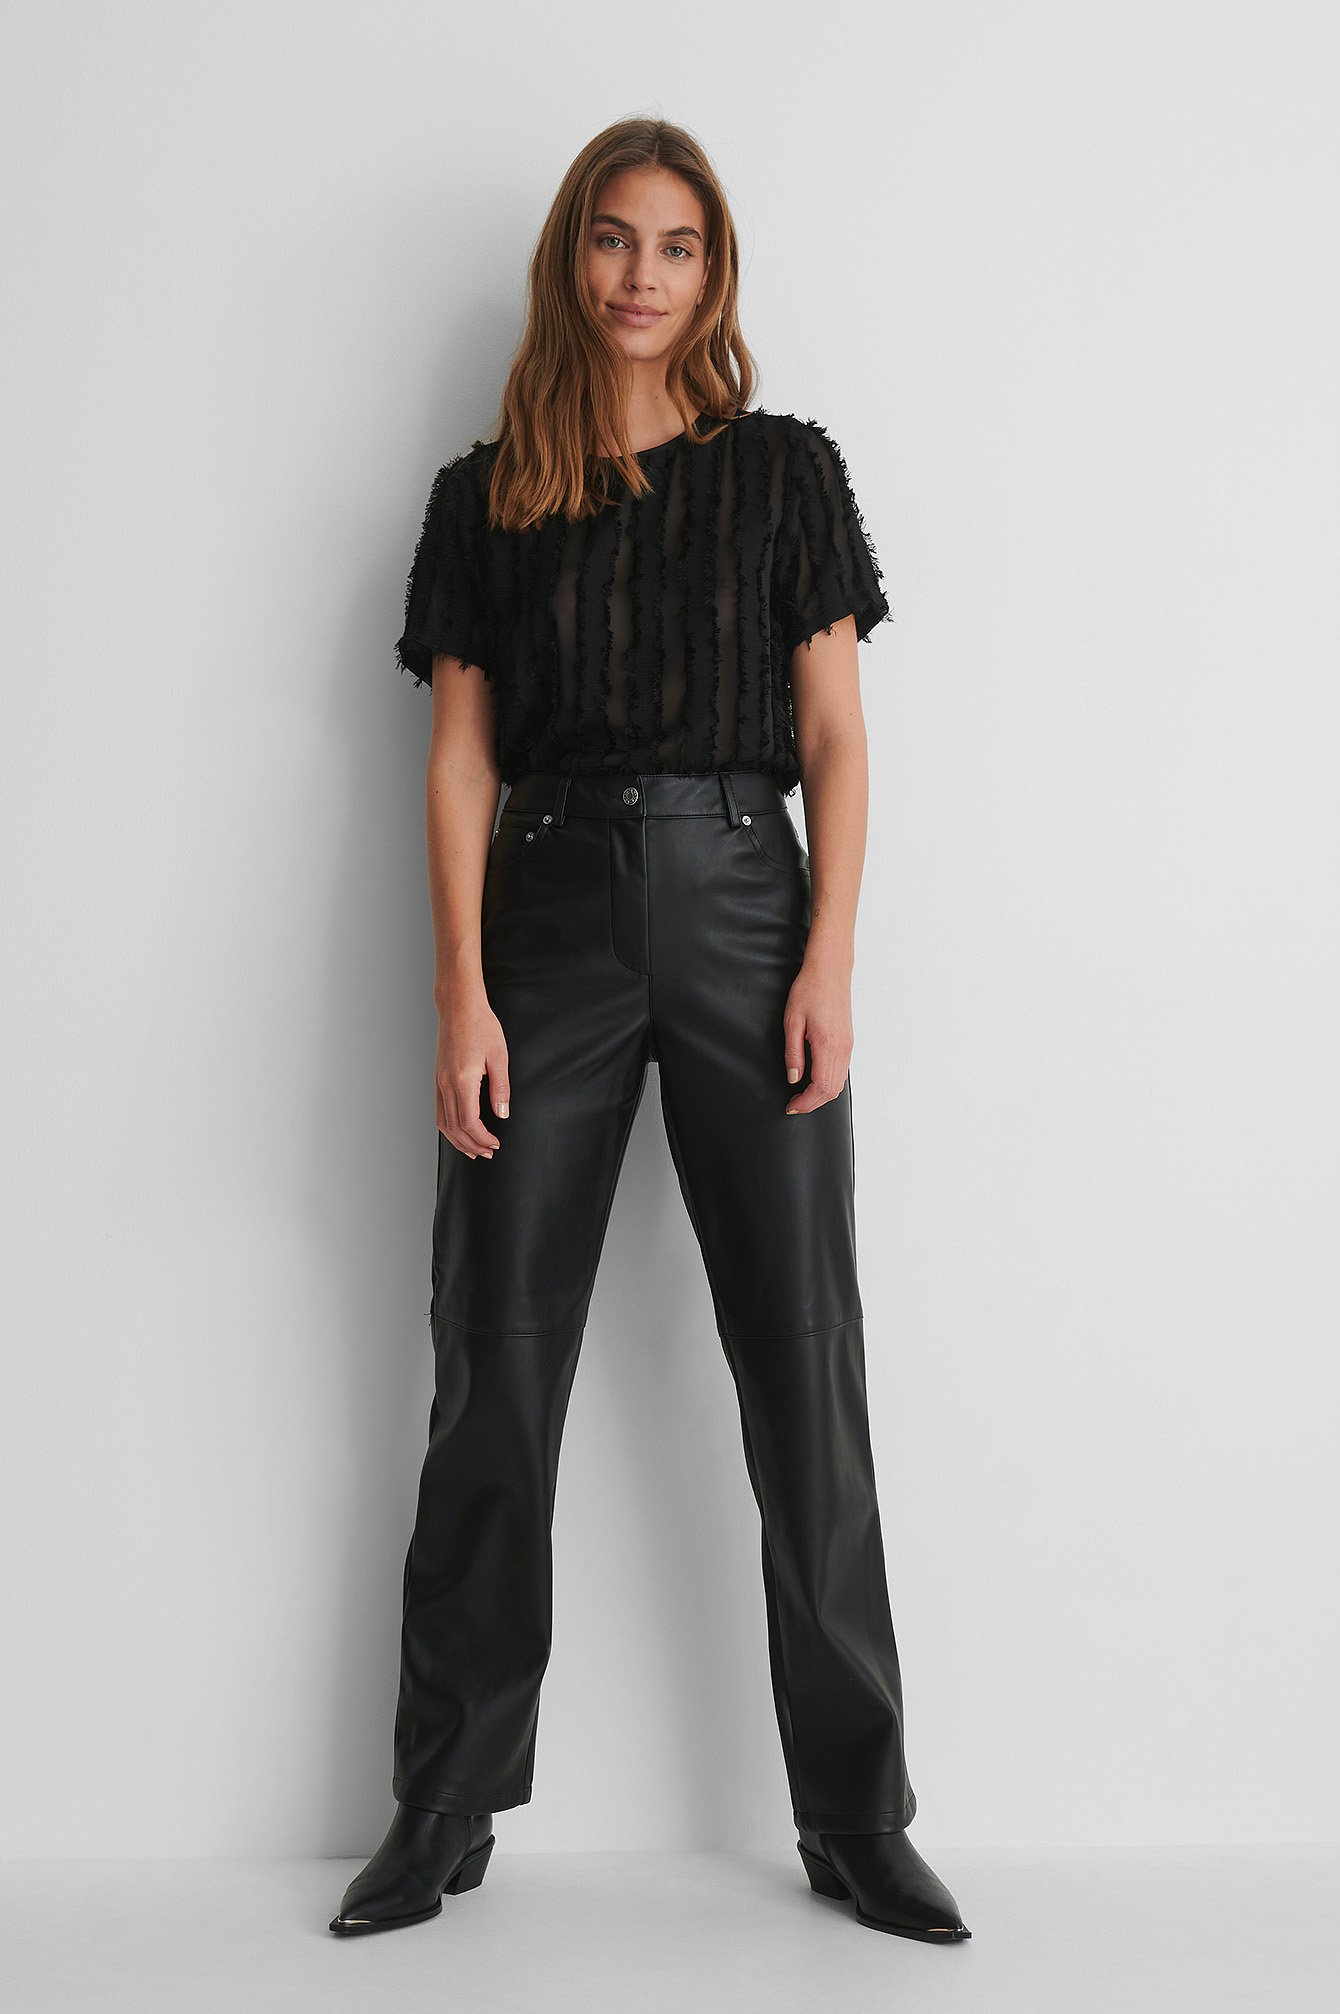 Round Neck Textured Top with PU Pants and Boots.